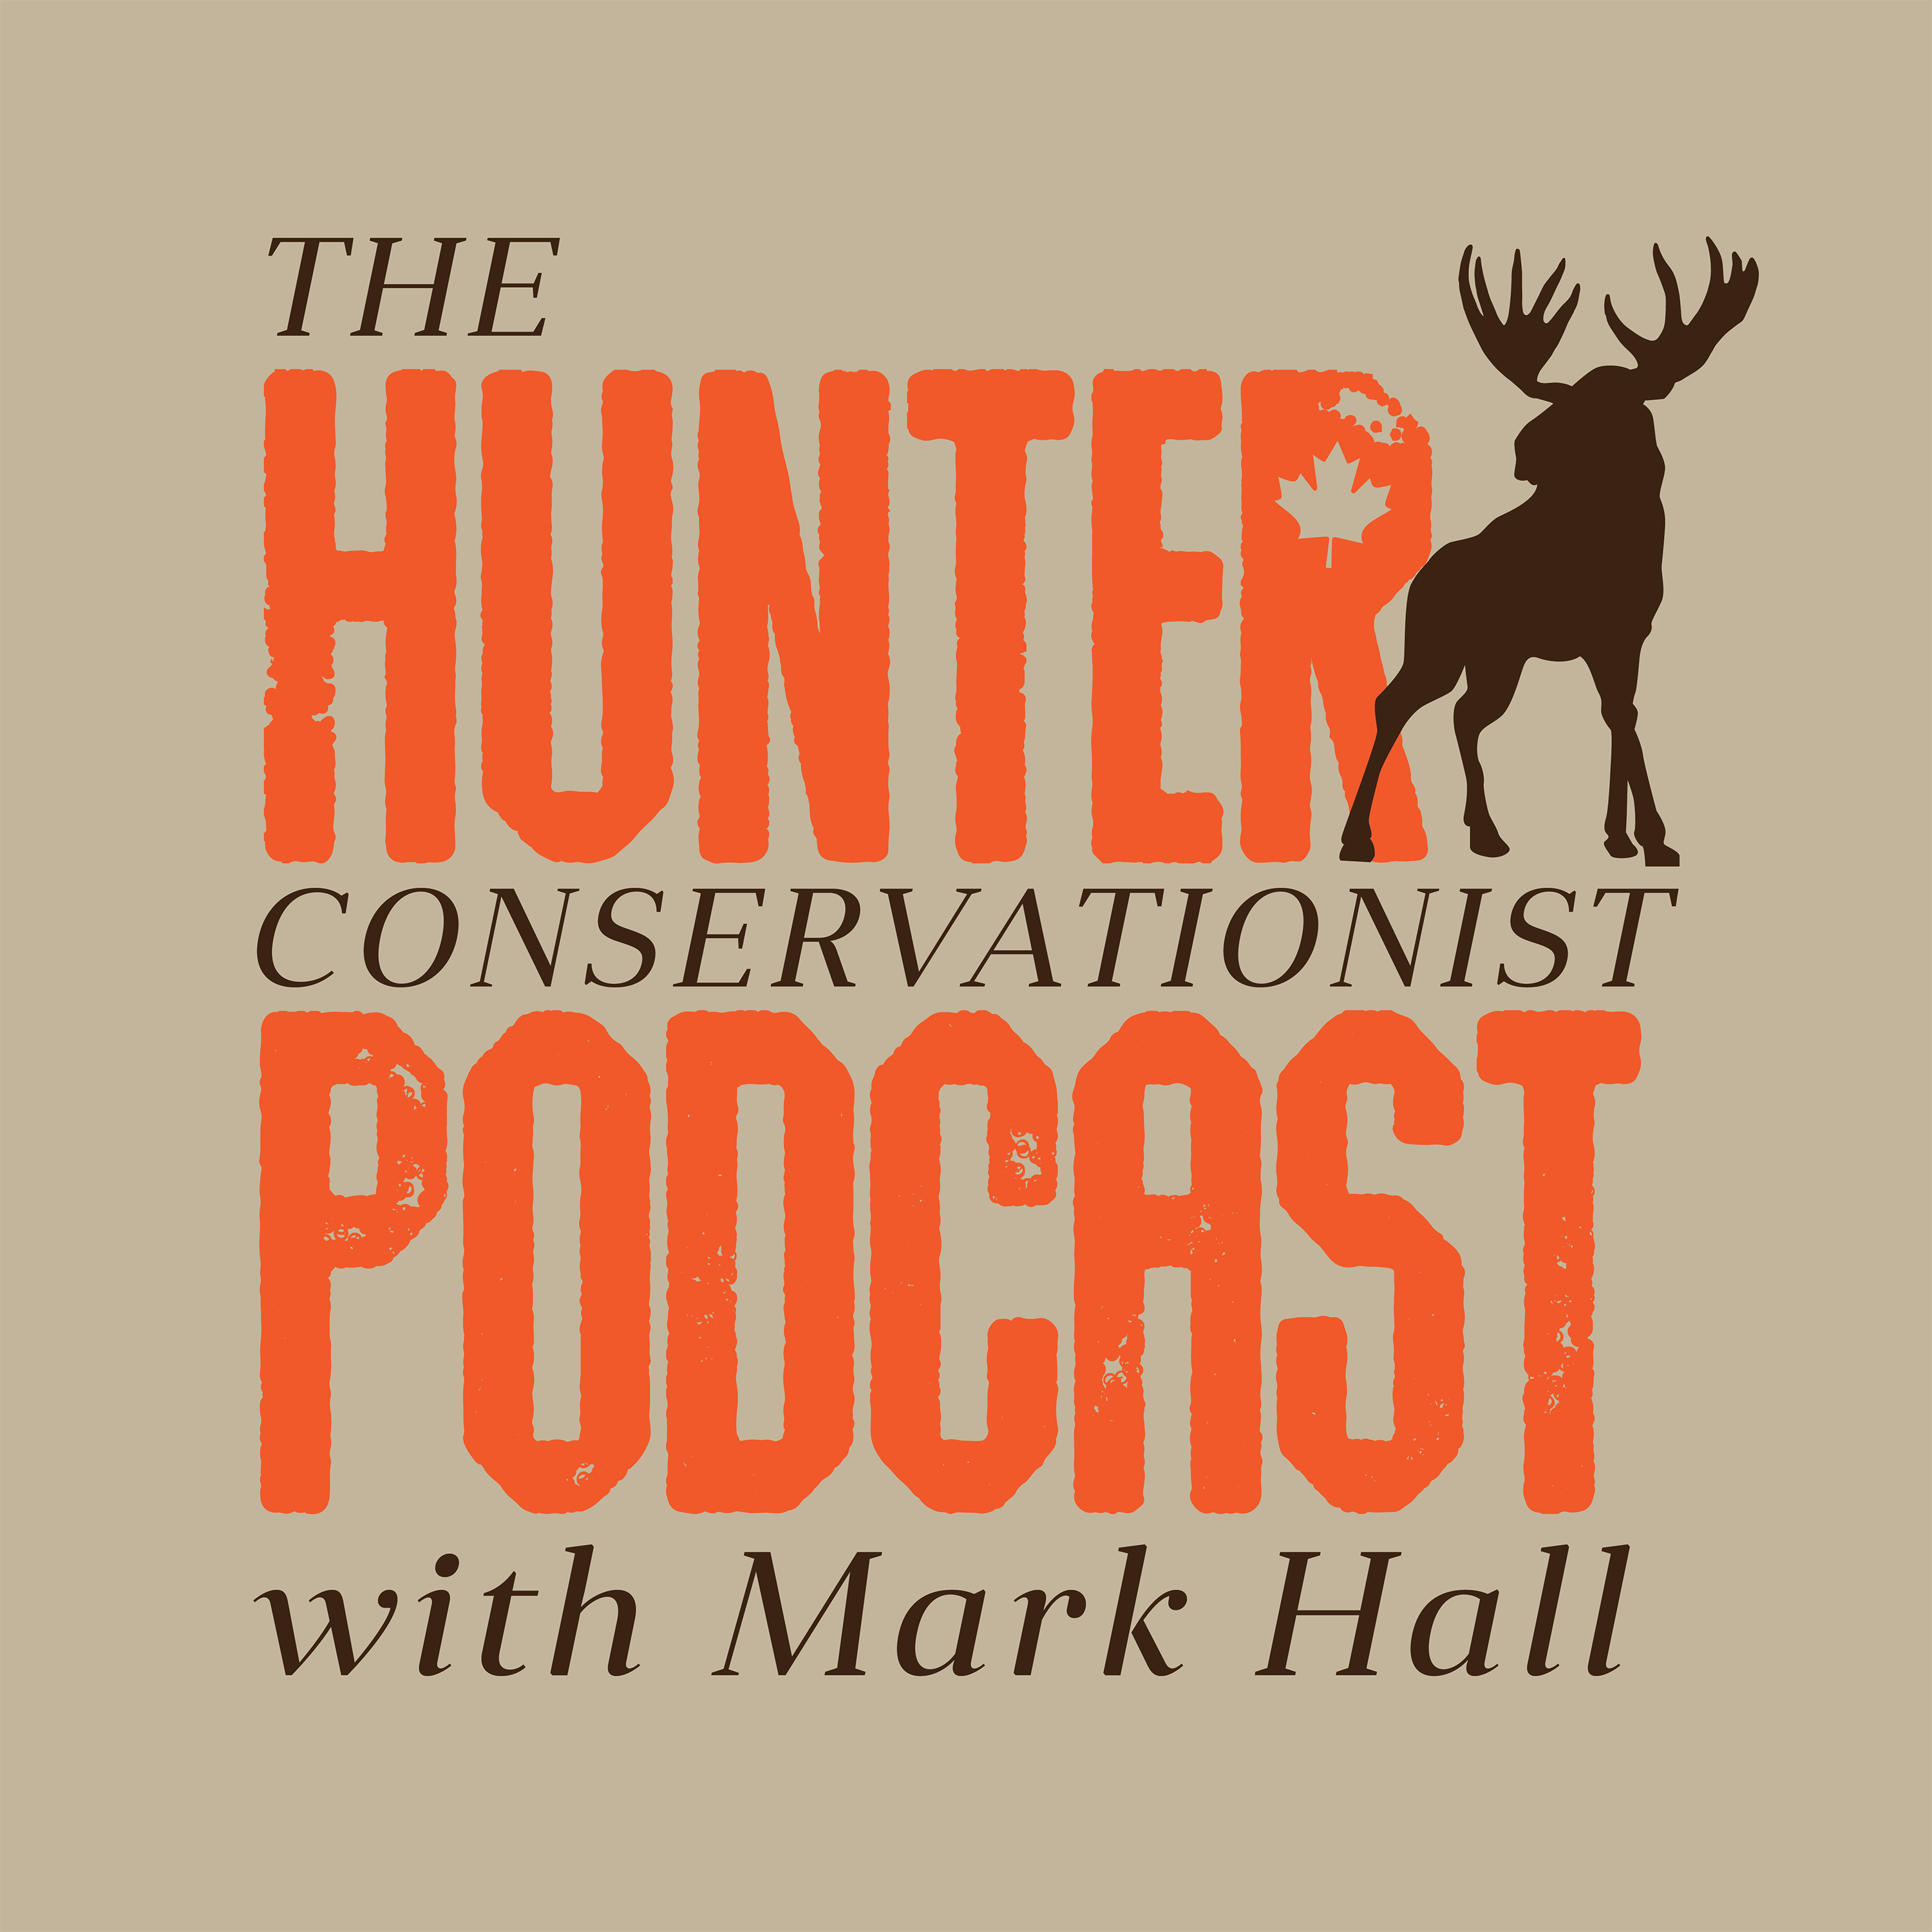 The Hunter Conservationist Podcast show art